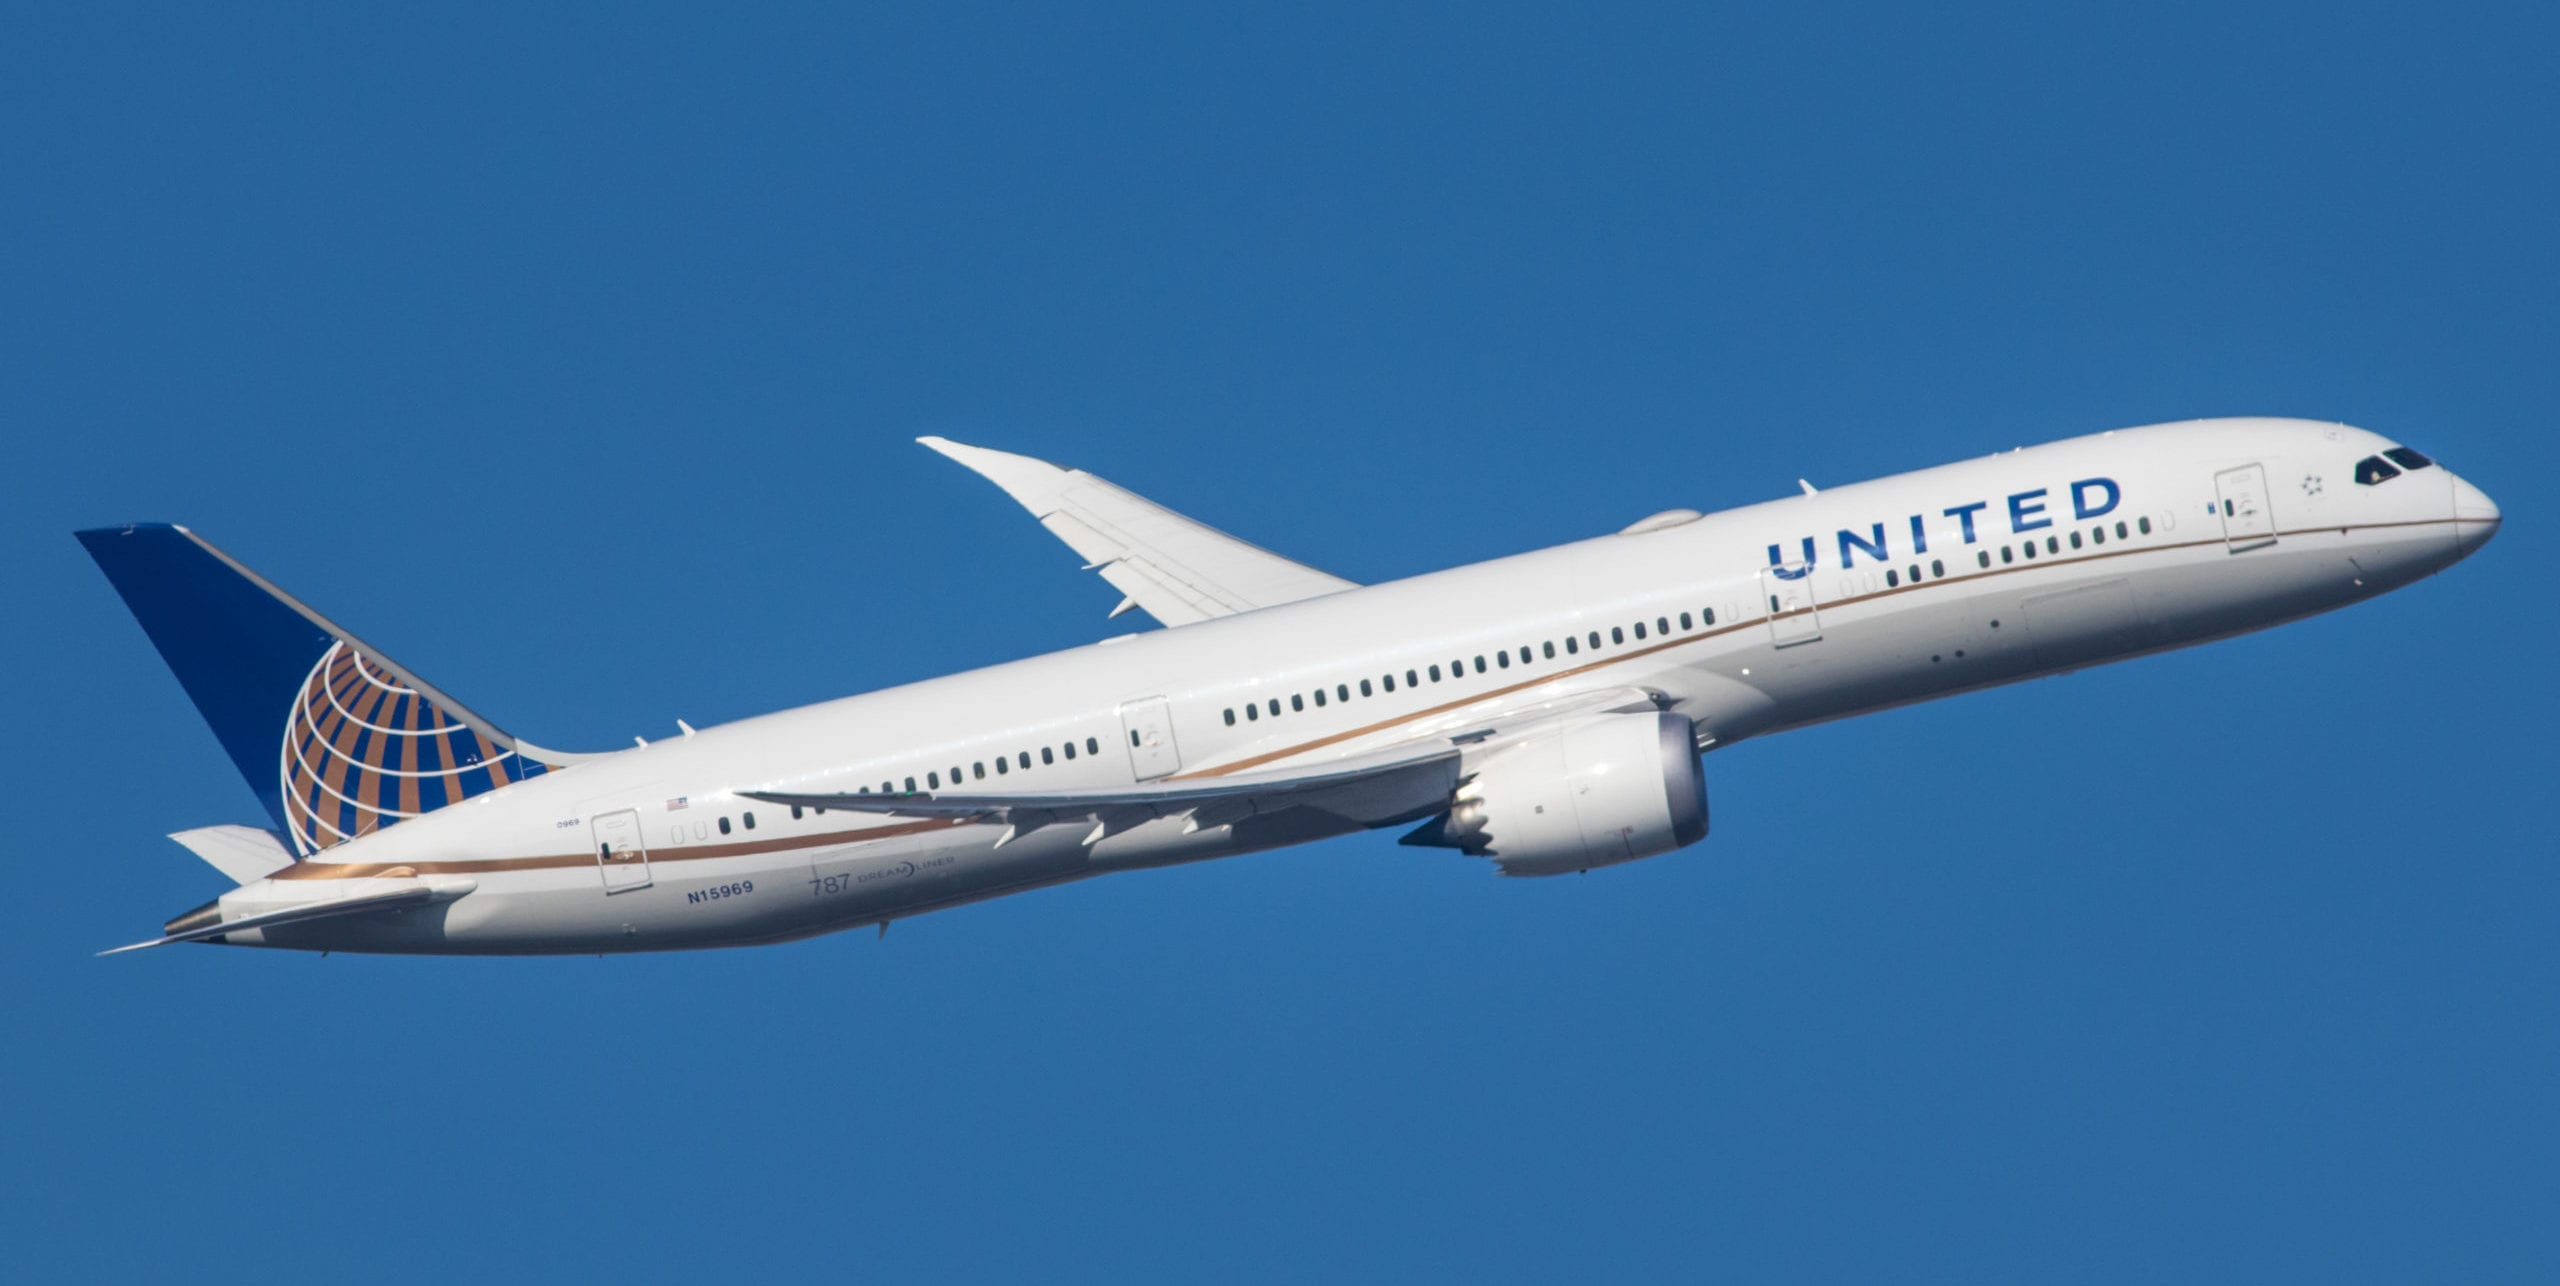 United Matches Delta, Extends Premier Status by One Year